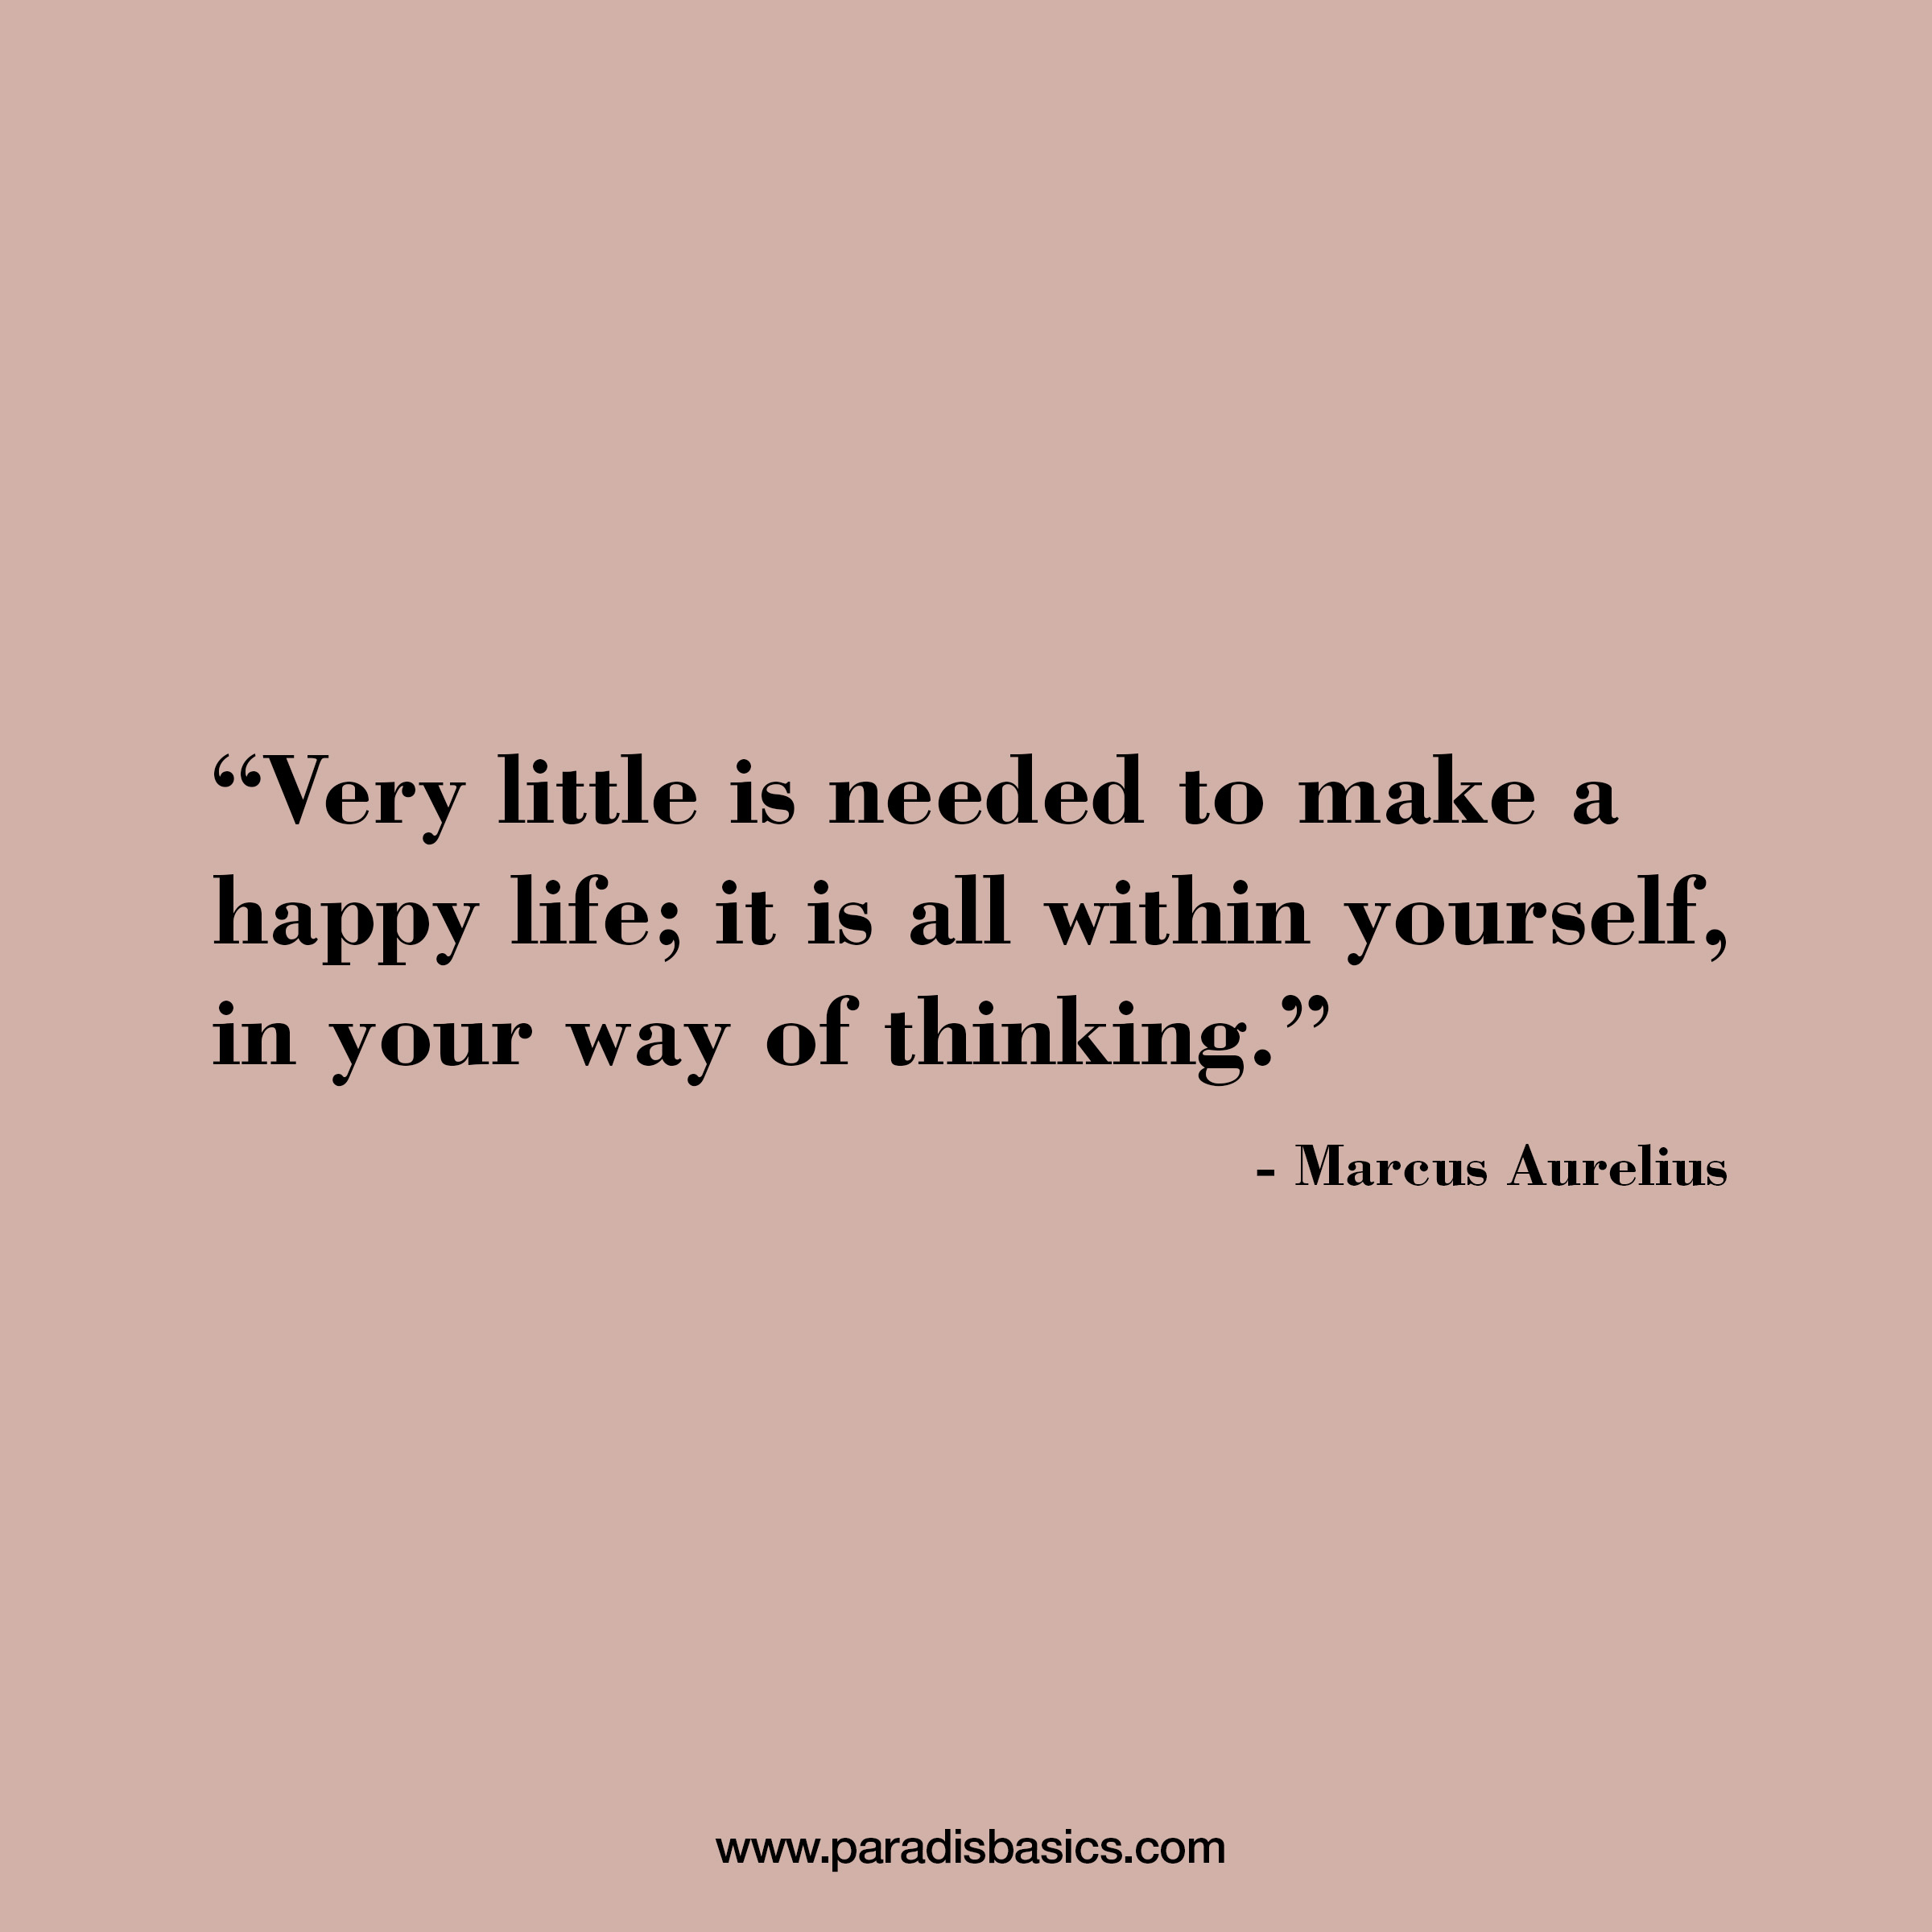 """""""Very little is needed to make a happy life; it is all within yourself, in your way of thinking."""" Marcus Aurelius"""